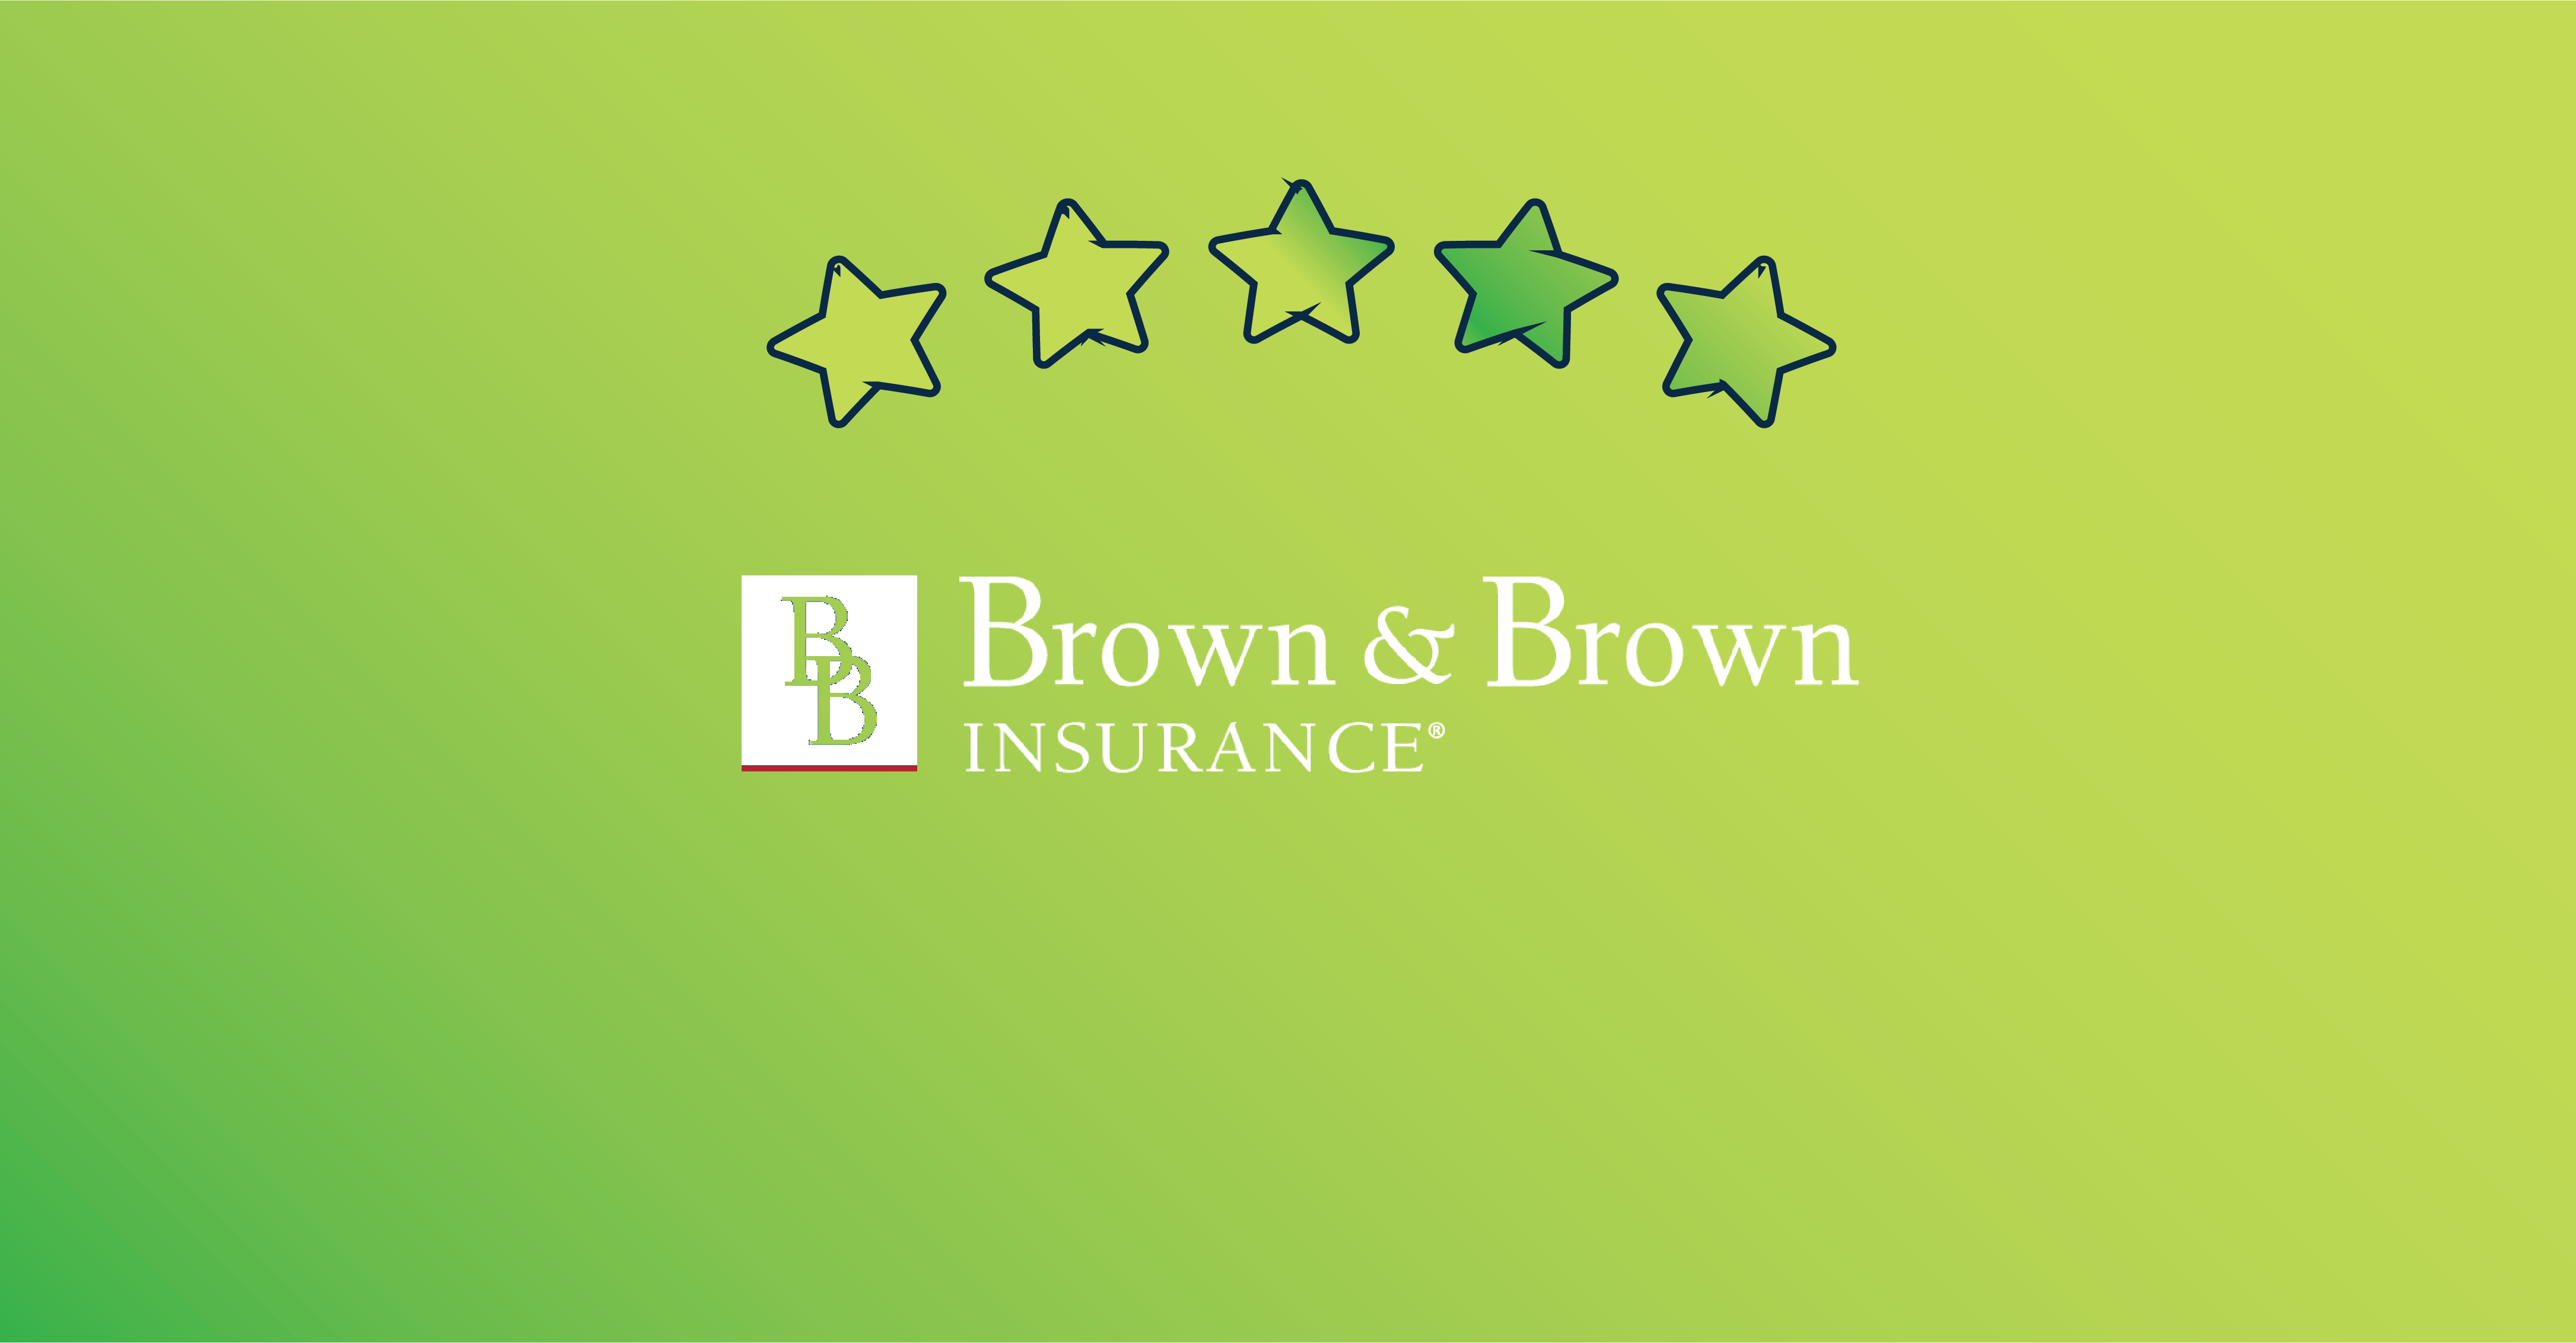 Brown & Brown Makes a Customer-Centric Decision